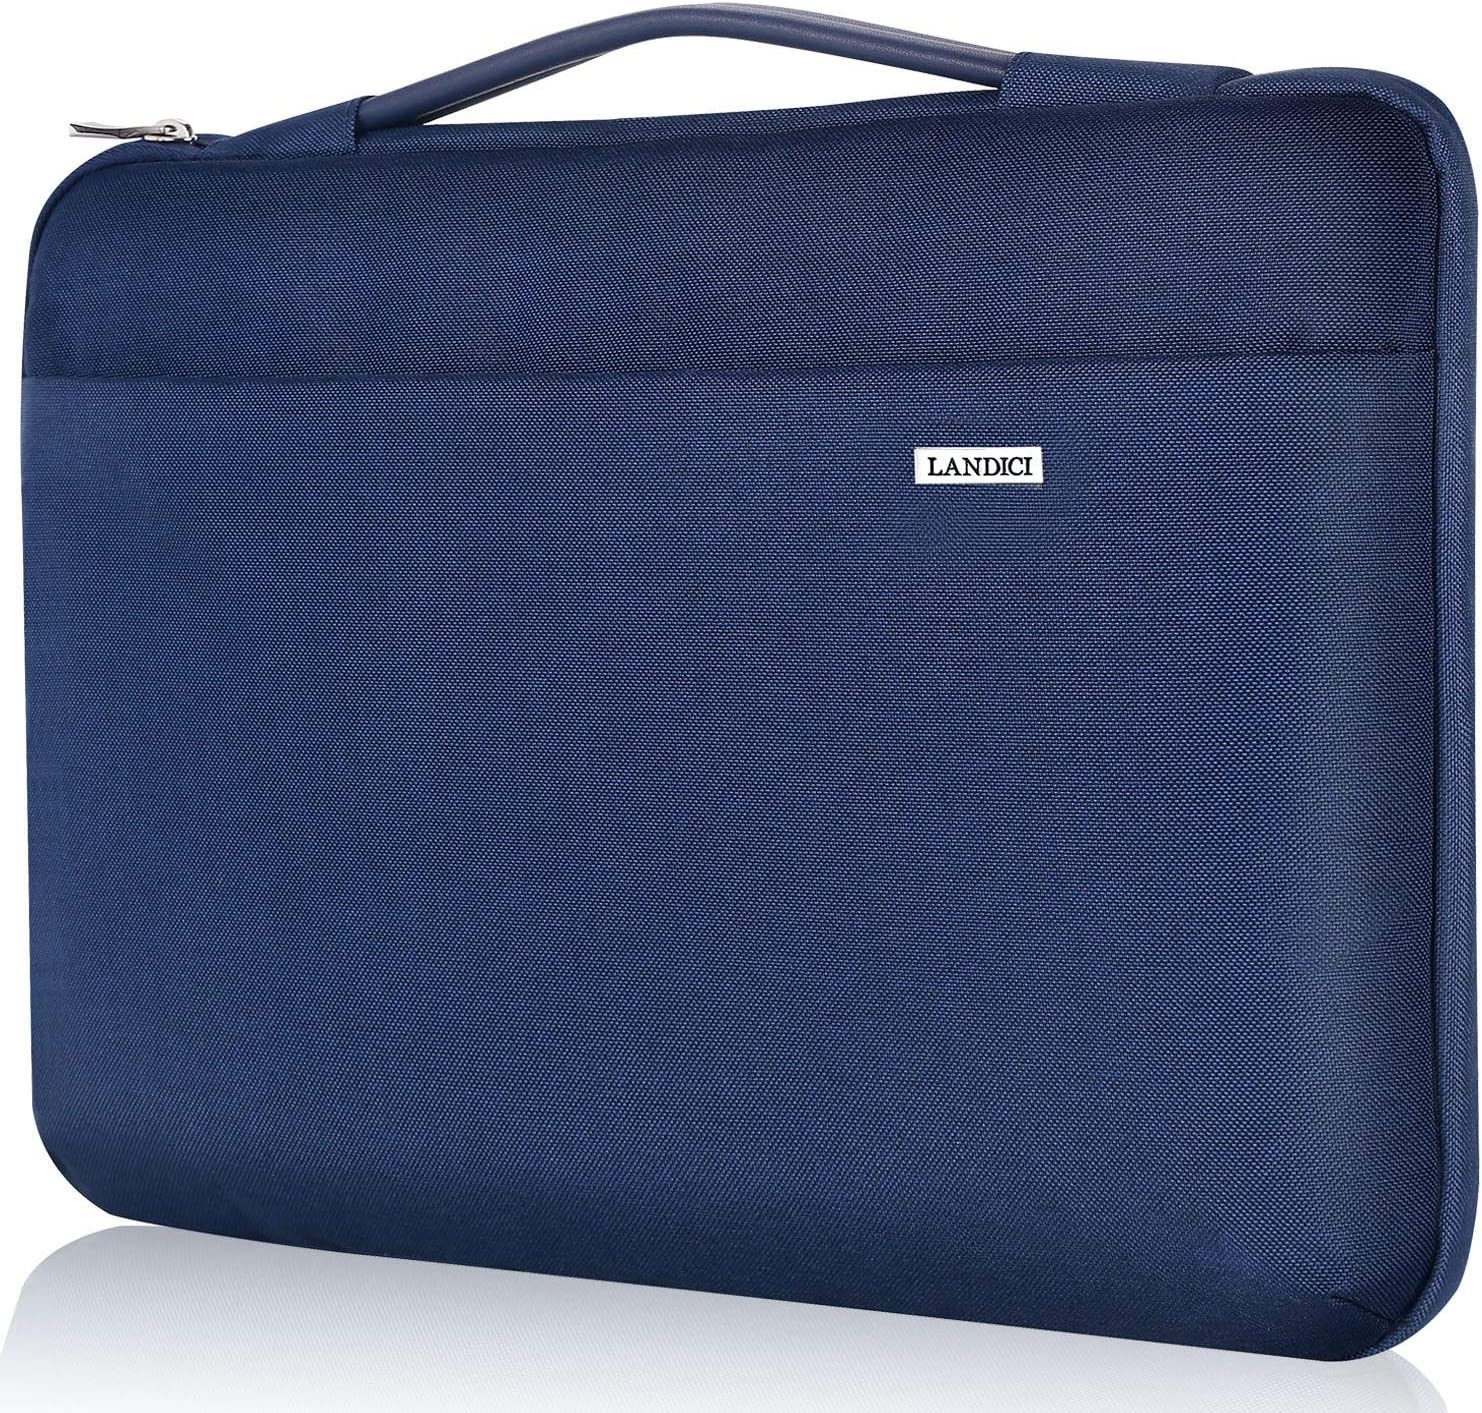 Landici Laptop Case Sleeve 14-15.6 Inch with Handle,360°Protective Computer Bag Compatible with 16